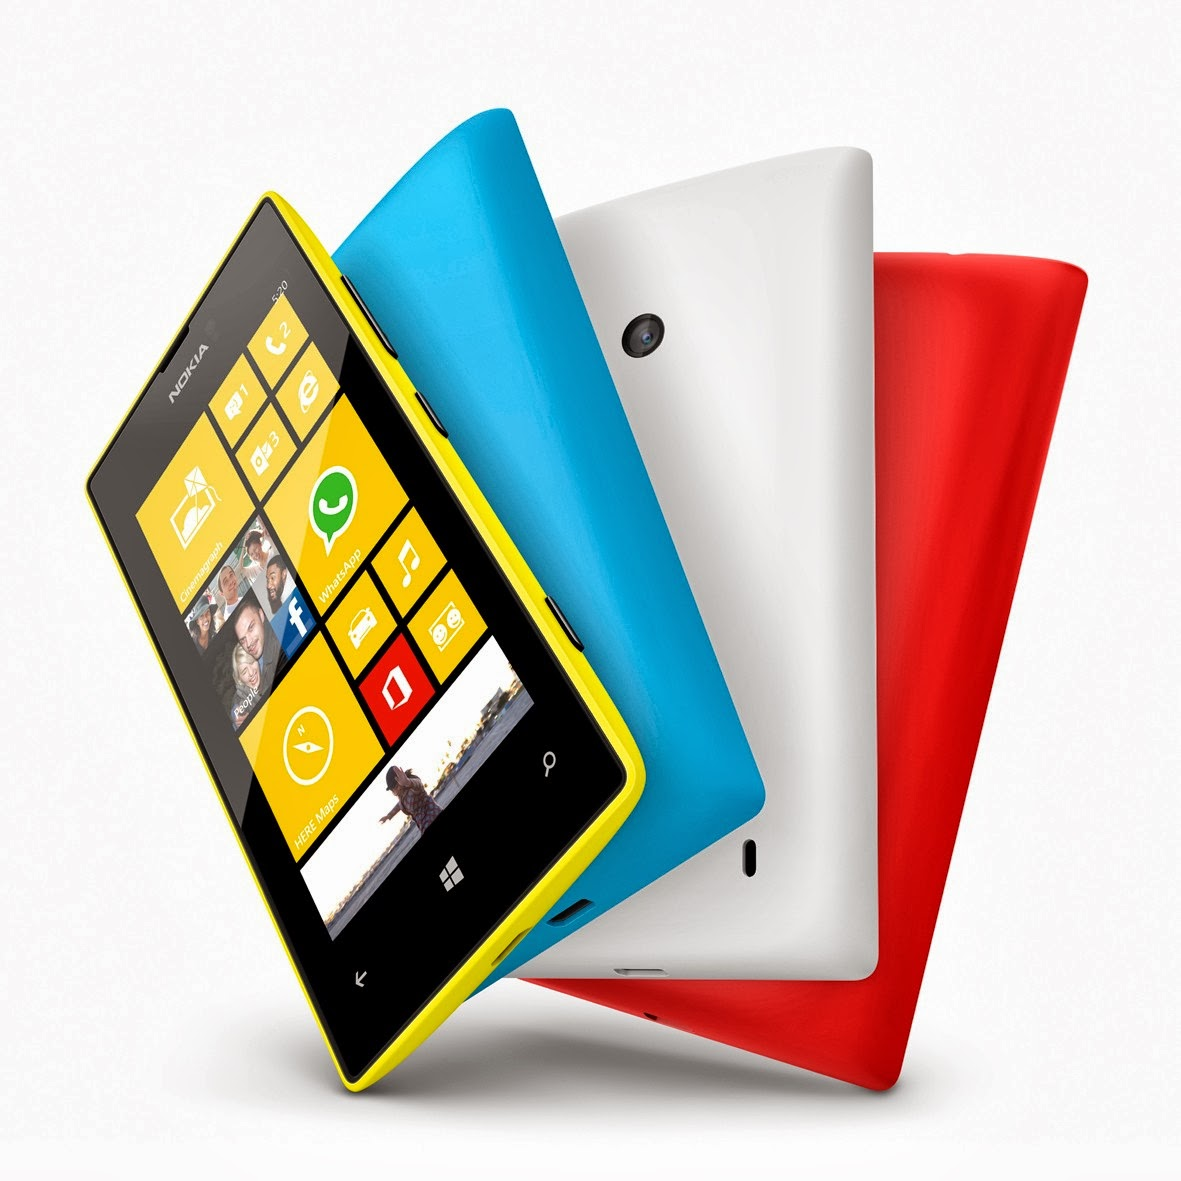 nokia lumia sales letter Thousands of customers around the world trust masterunlockcodecom the #1 source for resellers www  nokia lumia unlock codes.